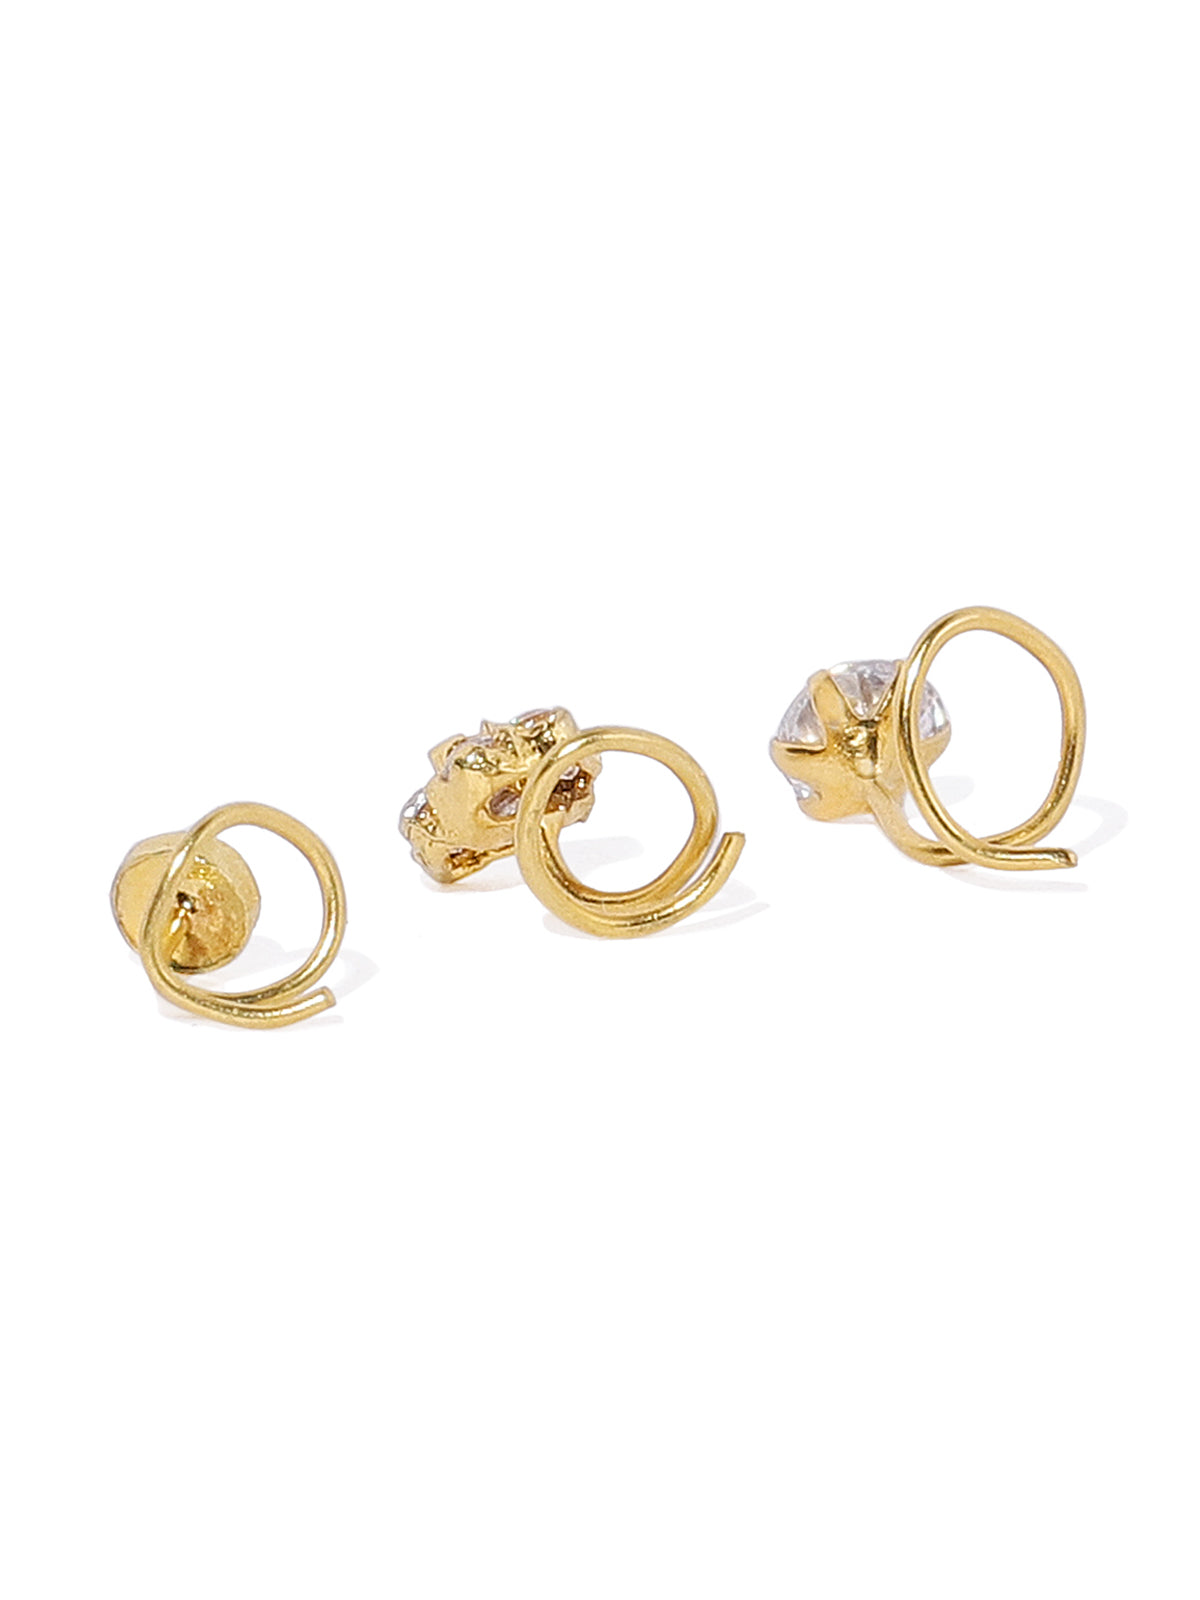 Combo Of 3 Zaveri Pearls Gold Tone Nose Ring-ZAVERI PEARLS1-Nose Ring